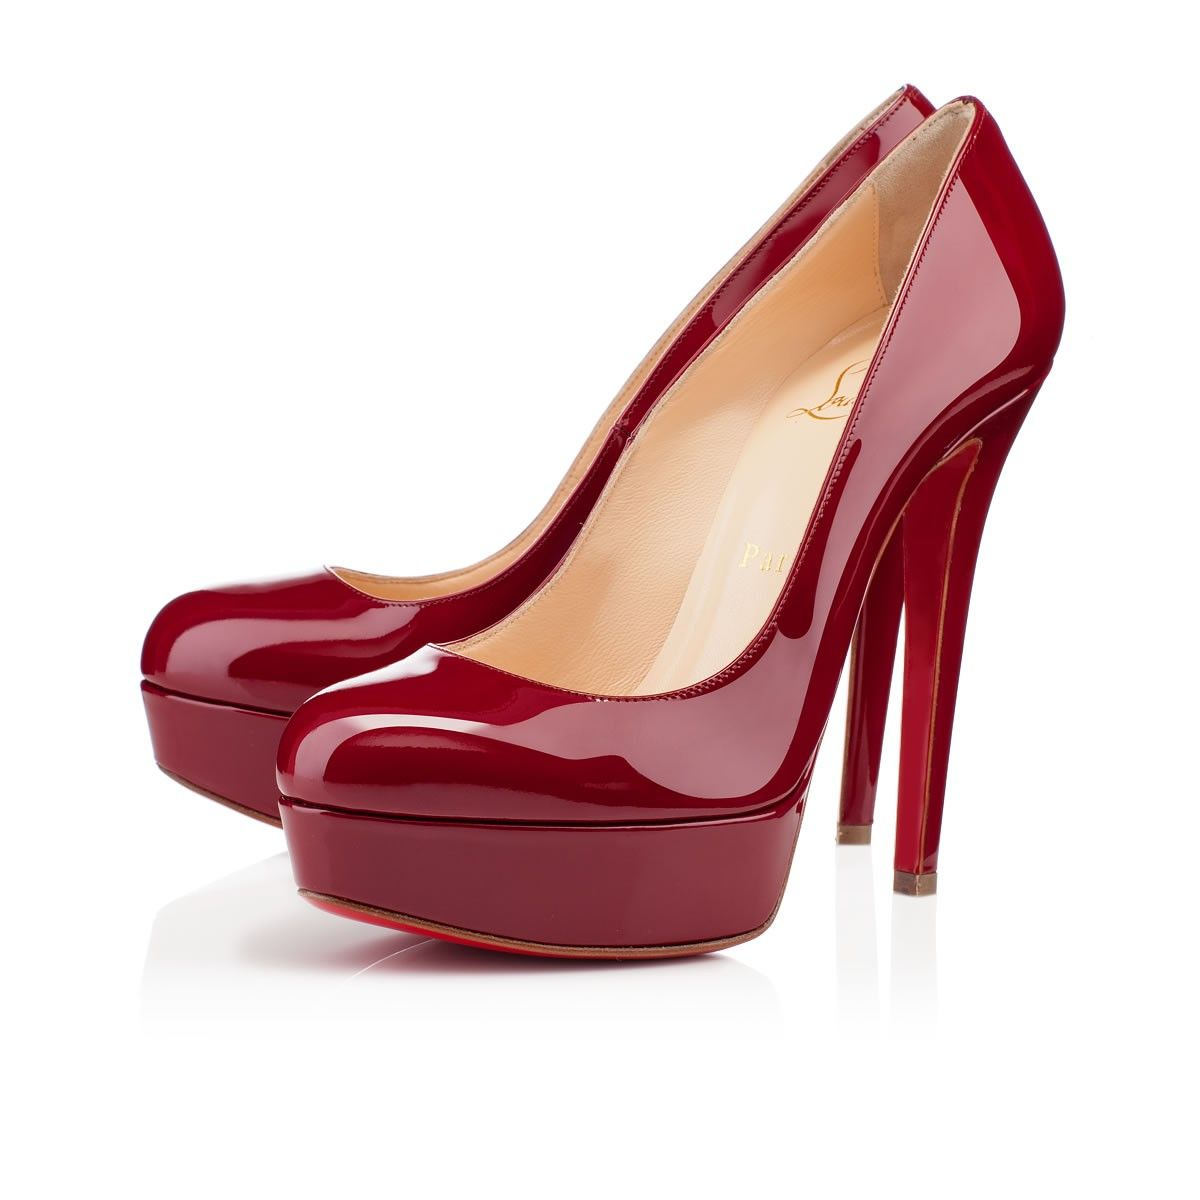 One day I will own red bottom shoes! Find this Pin and more on Christian  Louboutin Pumps ...